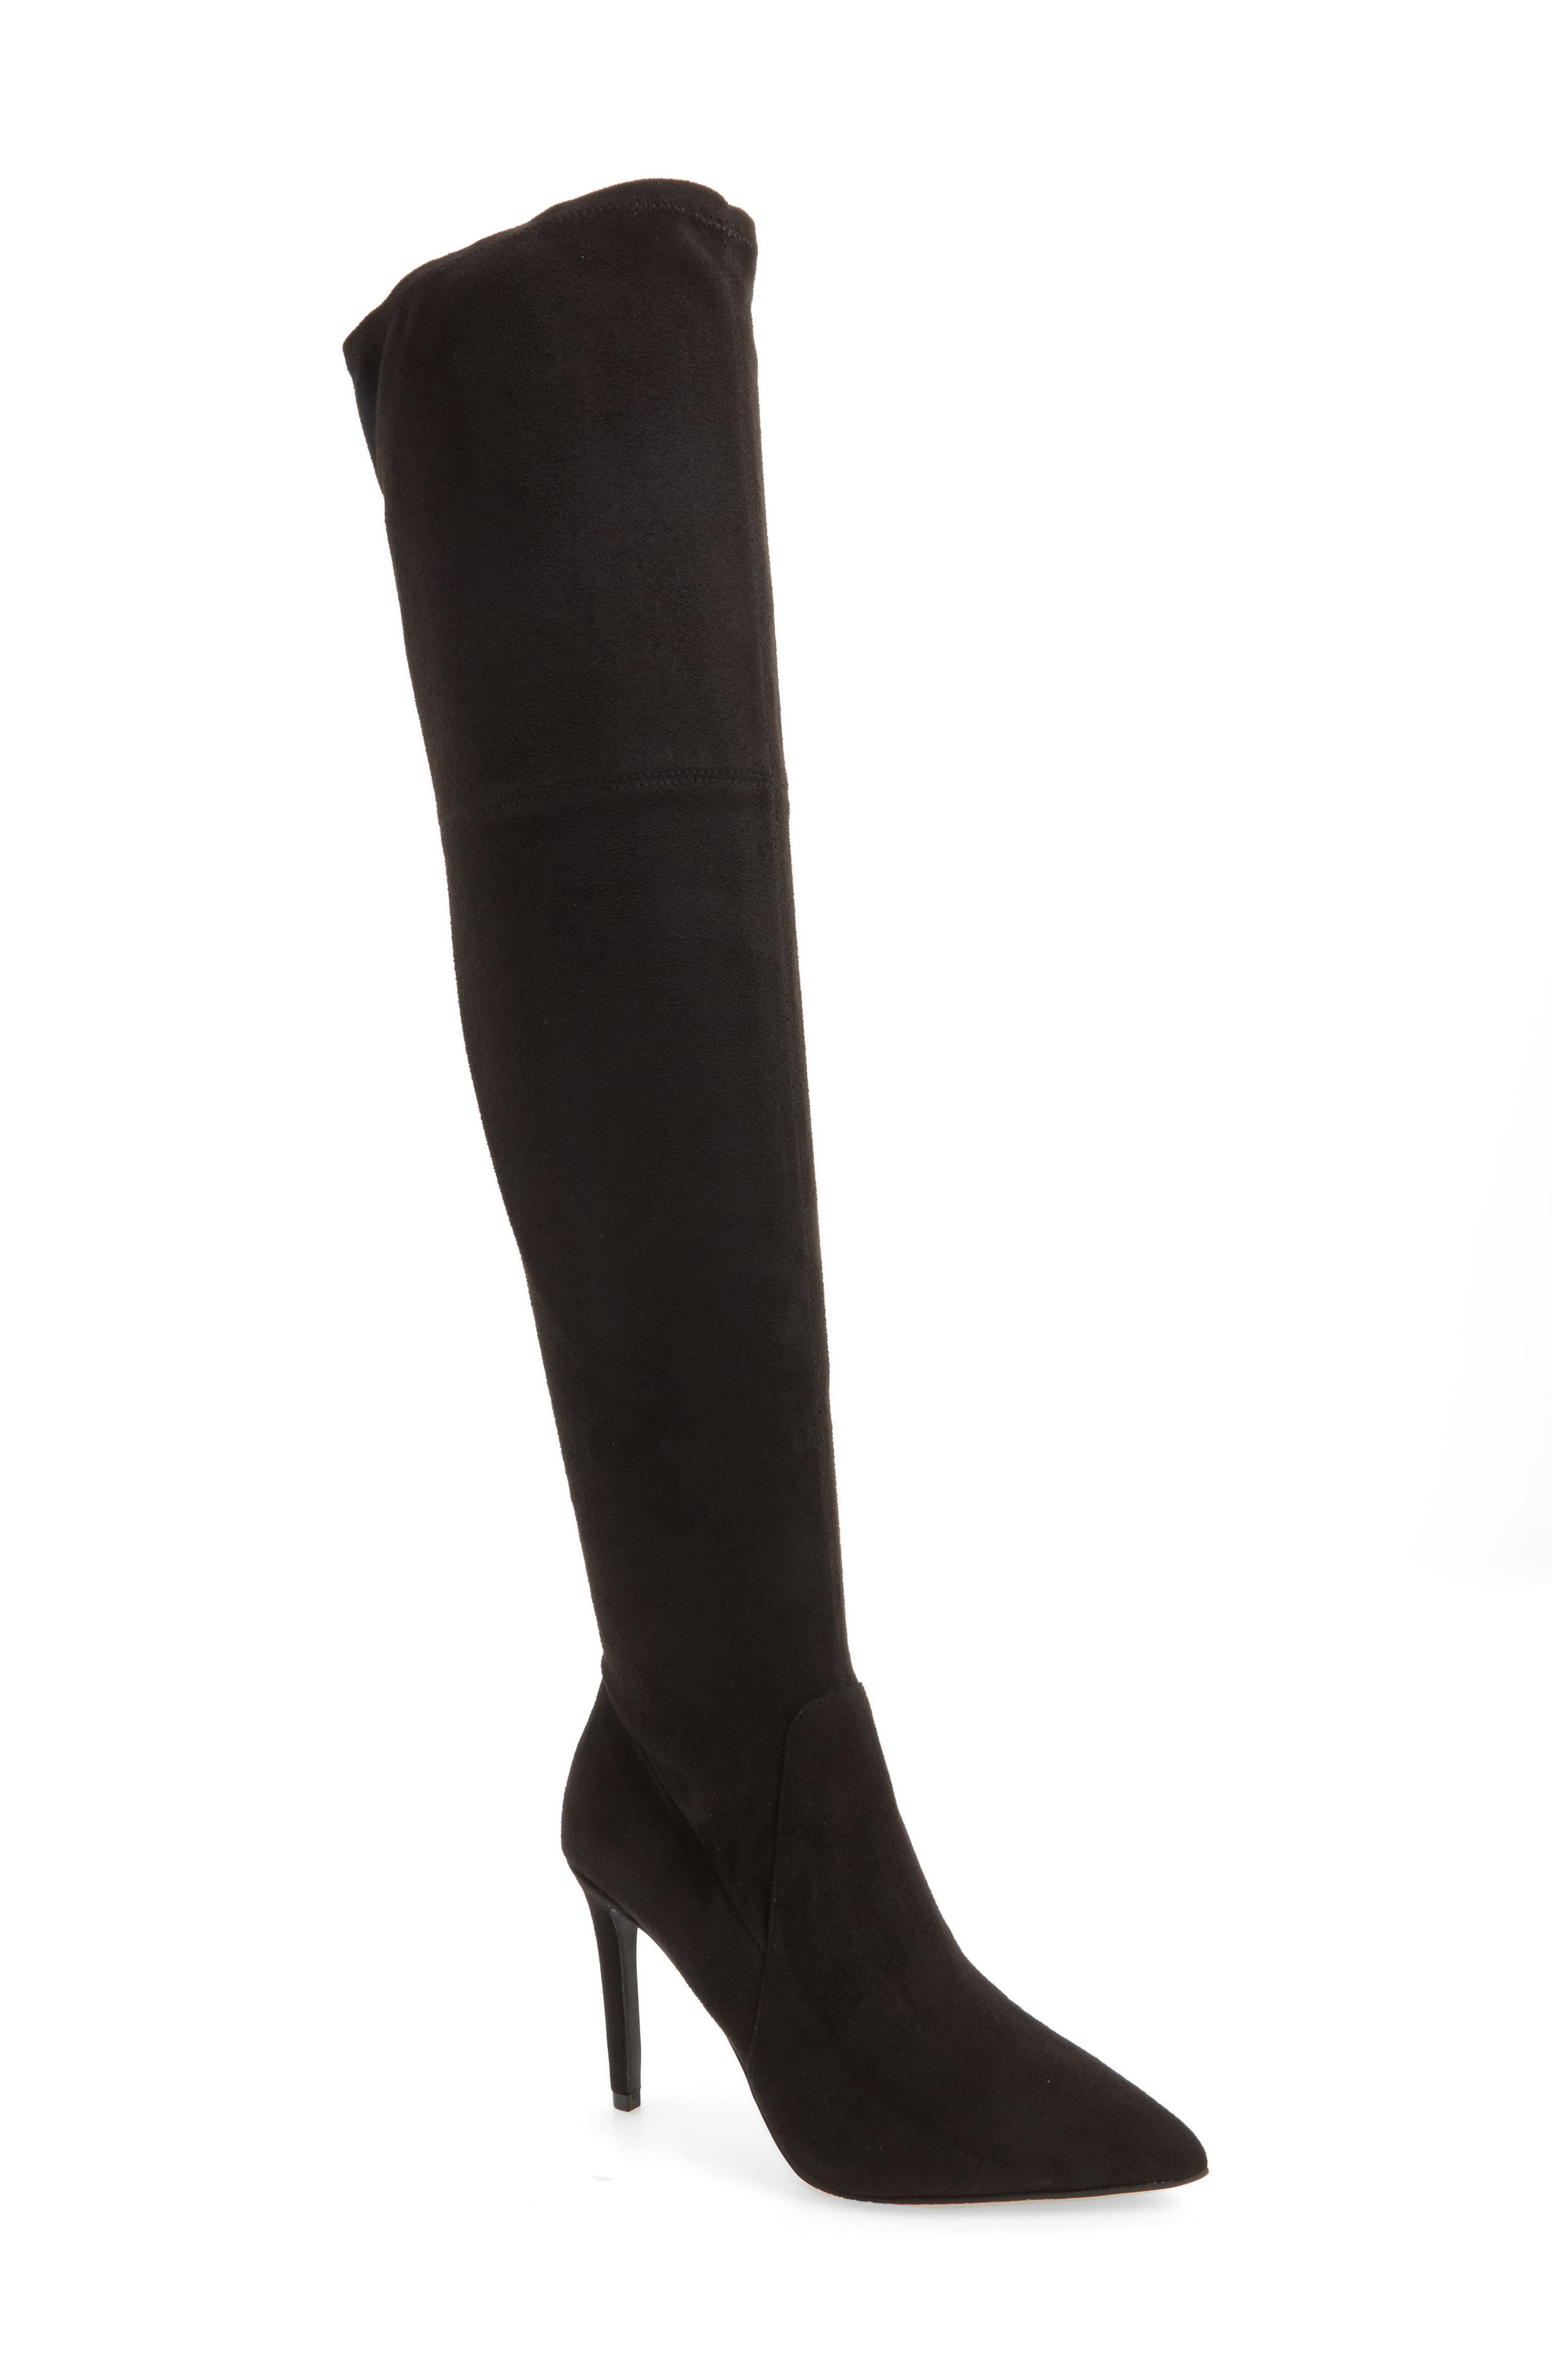 Fab Nara Over the Knee Boot,                         Main,                         color, Black Stretch Faux Suede